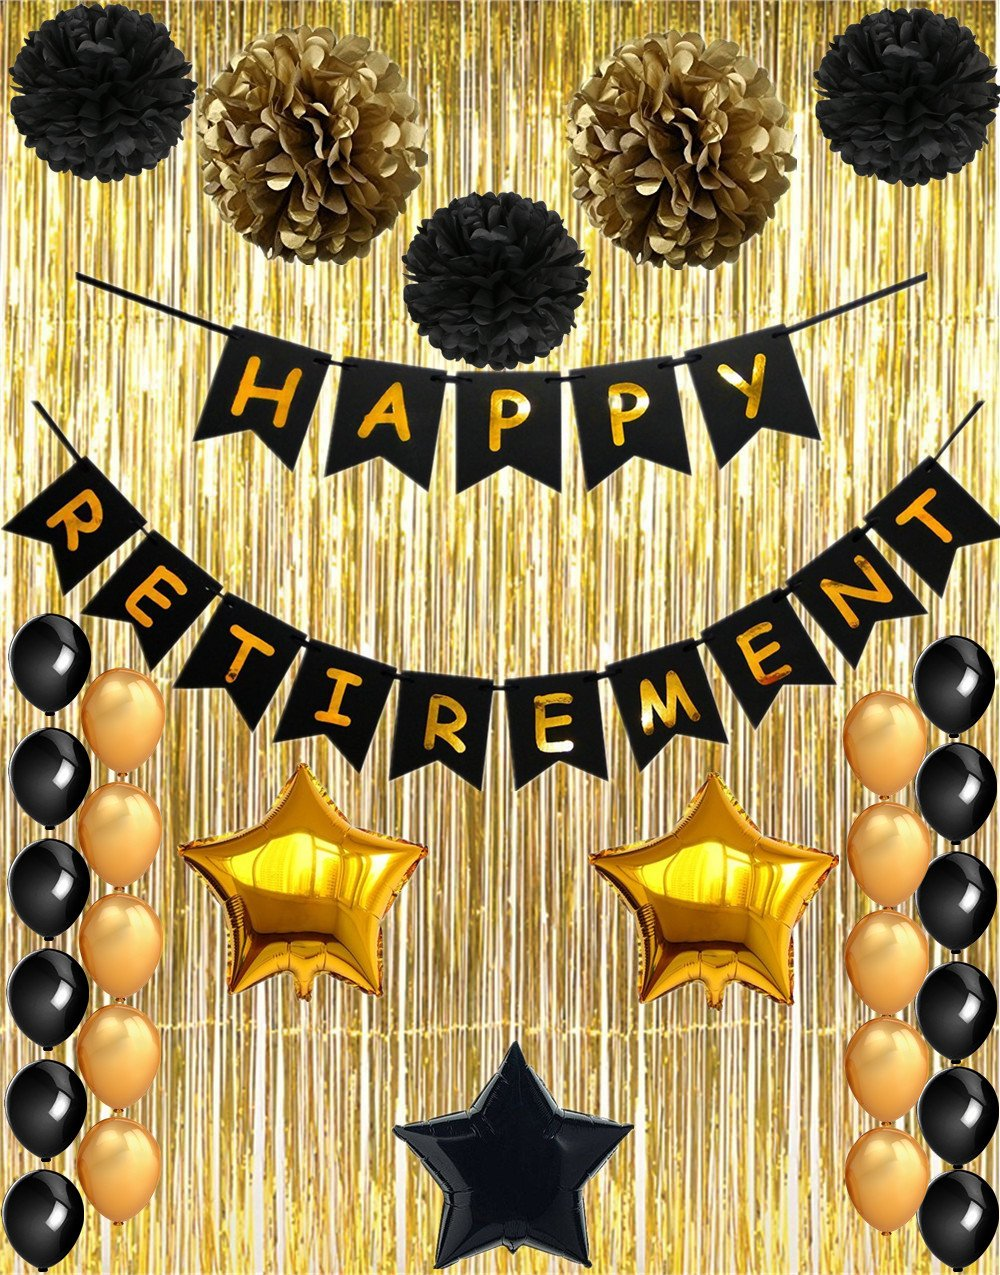 Happy Retirement Party Decorations, Vagski Black and Gold Happy Retirement Banner with Latex Balloons, Pom Poms Flowers and Gold Foil Curtain, Perfect Party Supplies for Retirement Decorations VAG010A